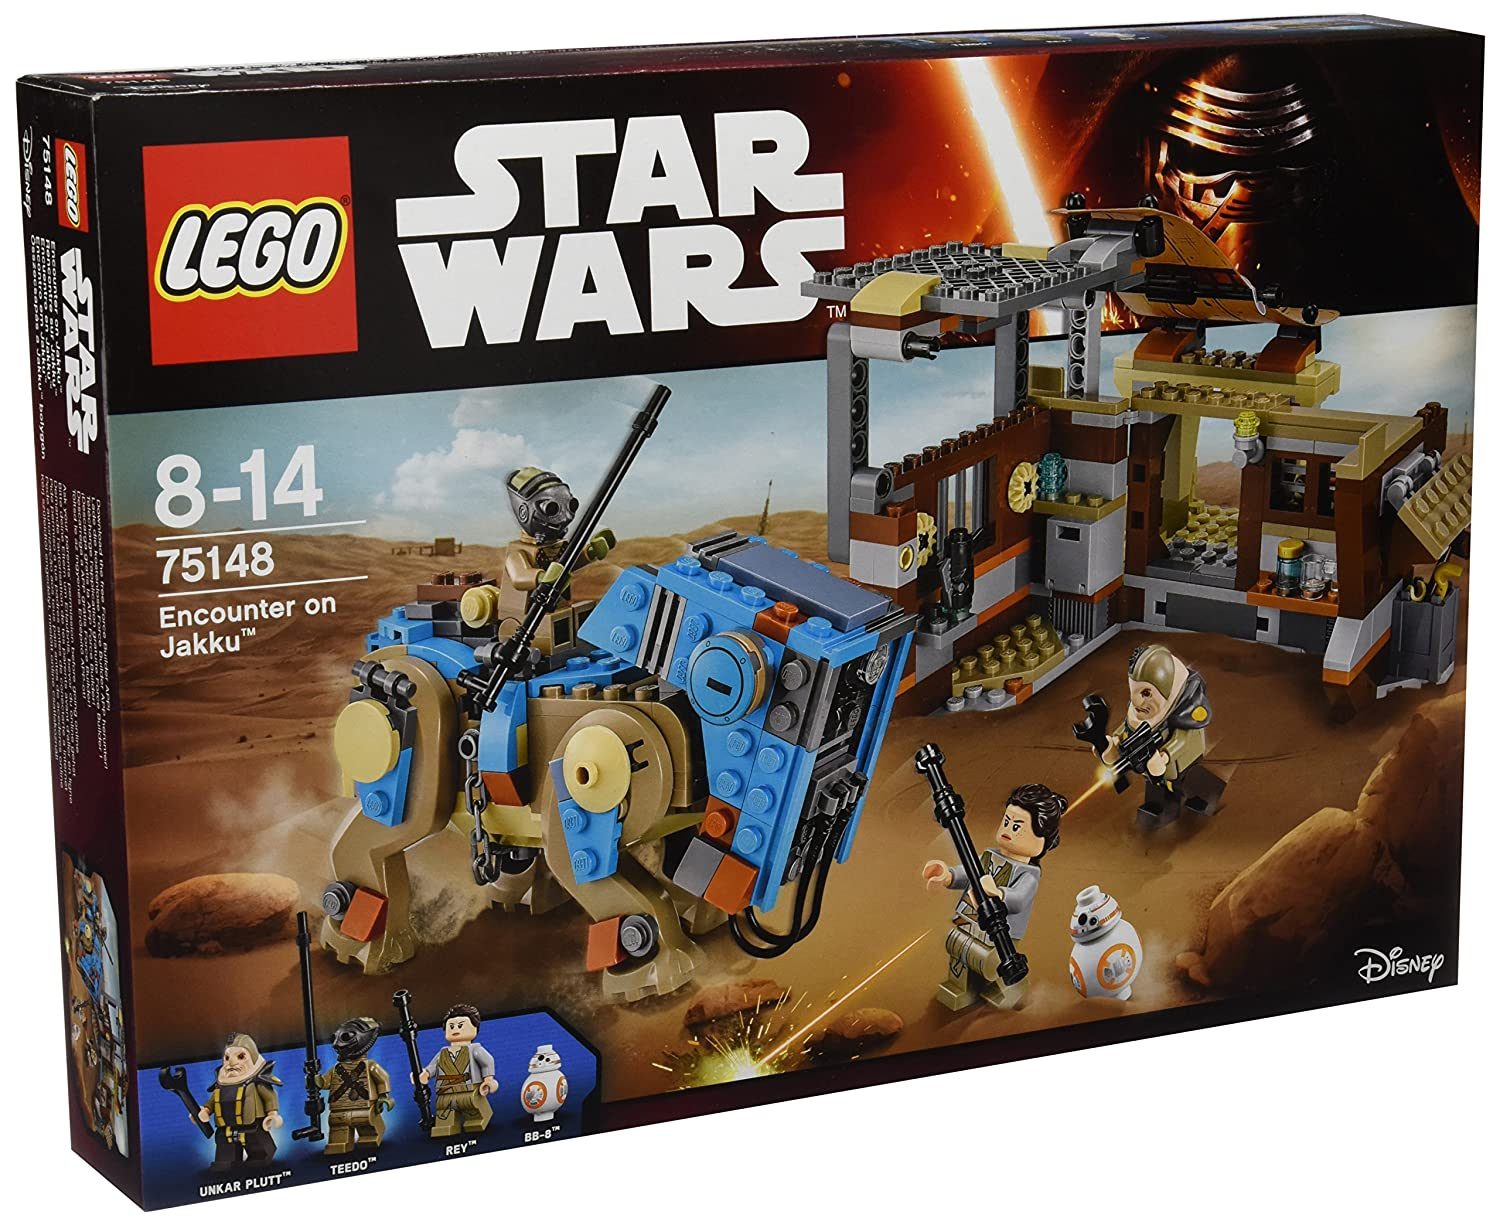 Set LEGO Star Wars - 75148 Encounter on Jakku in offerta sottocosto